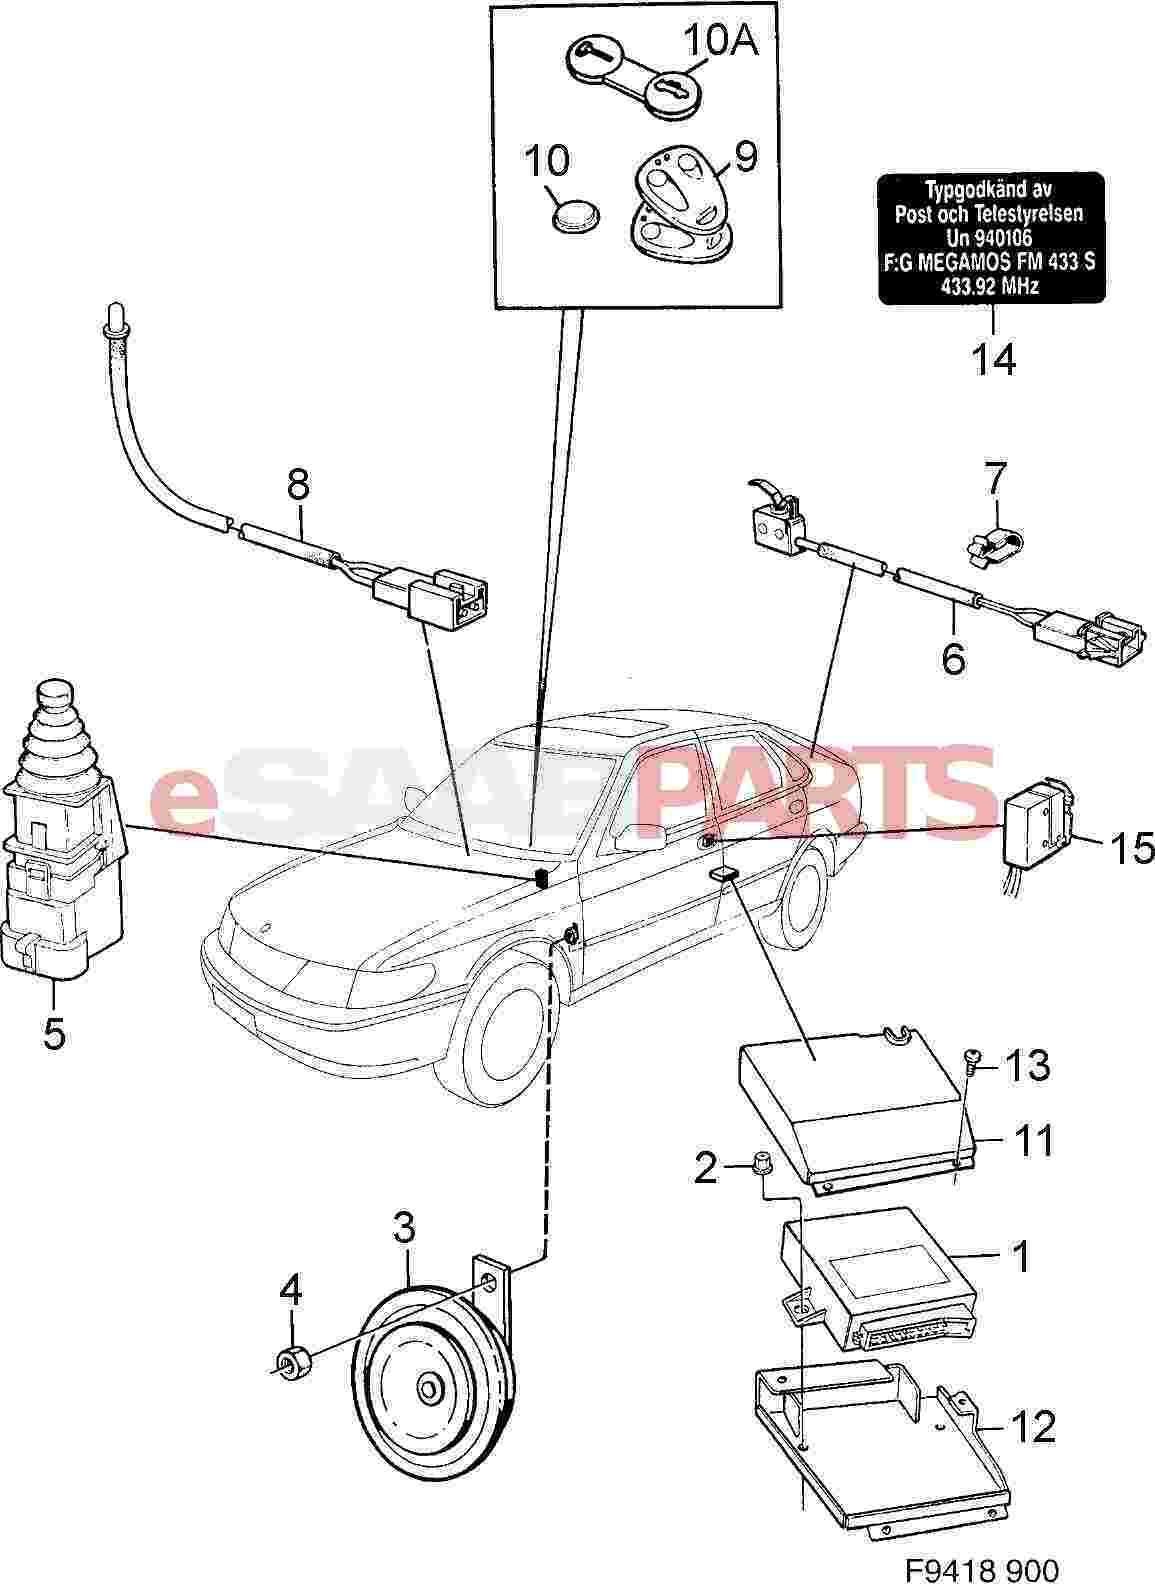 1995 saab 9000 parts diagram